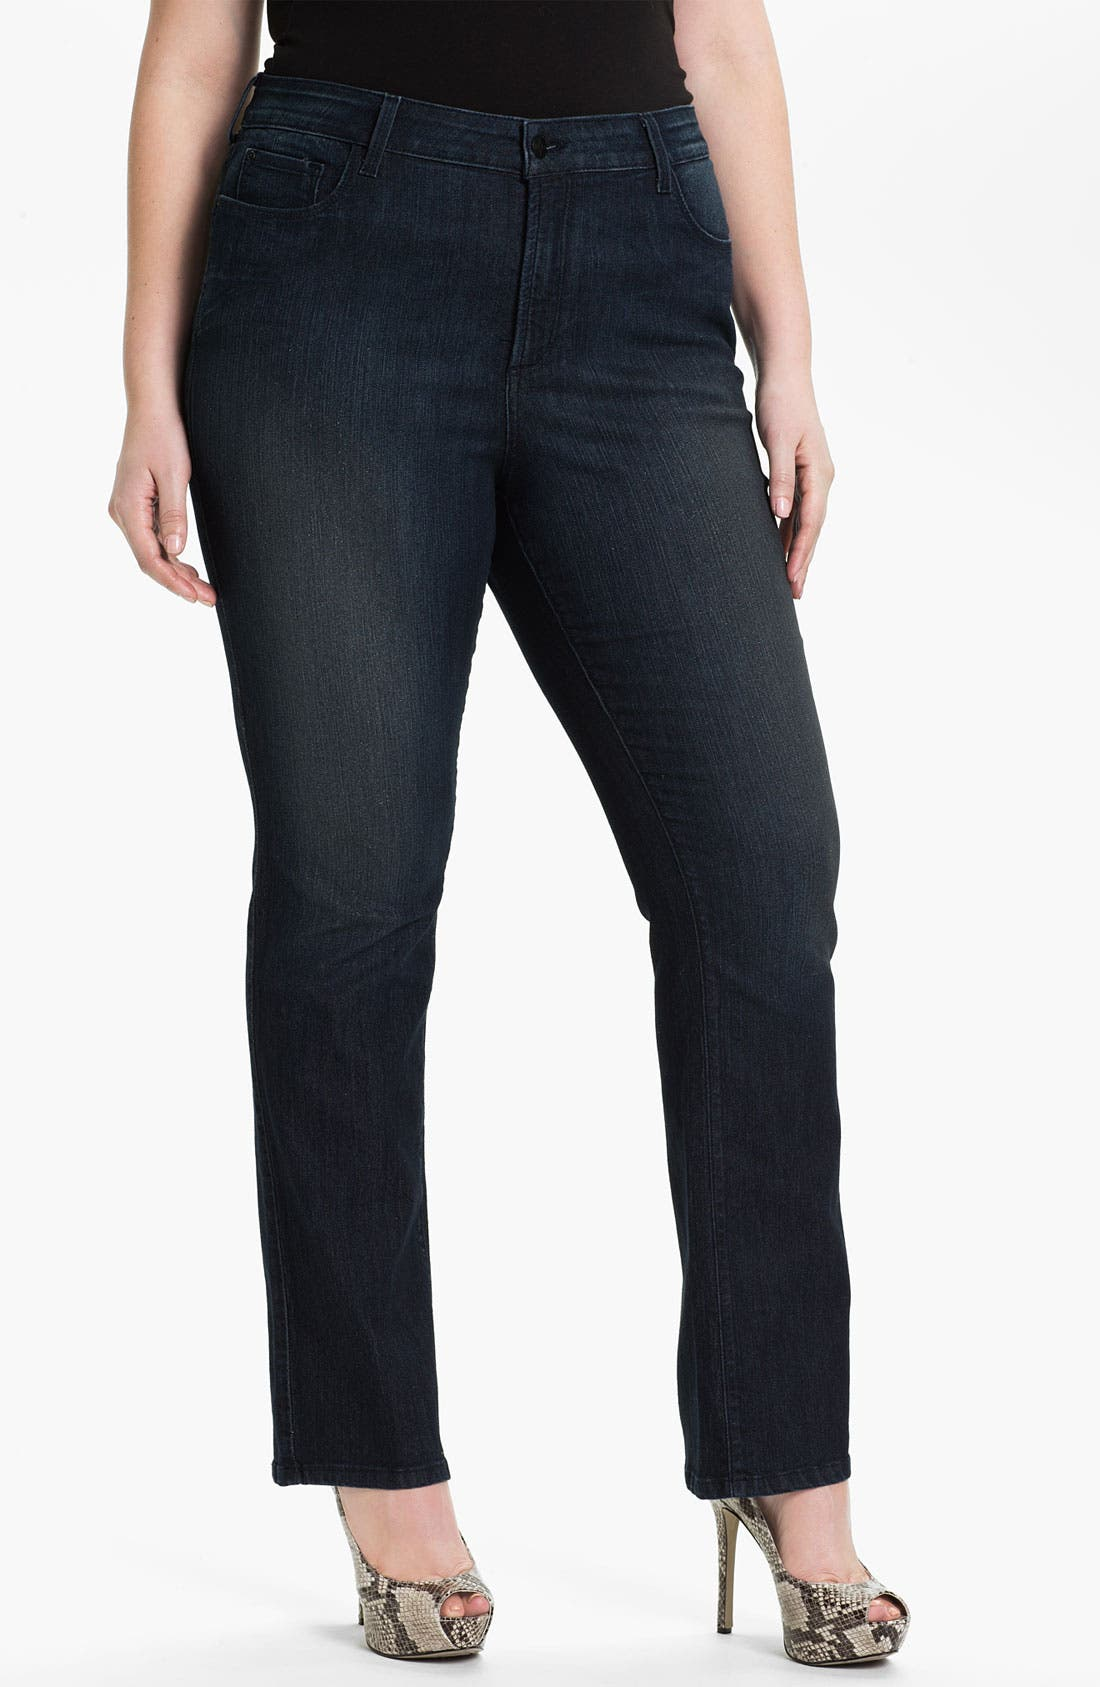 Alternate Image 1 Selected - NYDJ 'Marilyn' Straight Leg Stretch Denim Jeans (Plus)